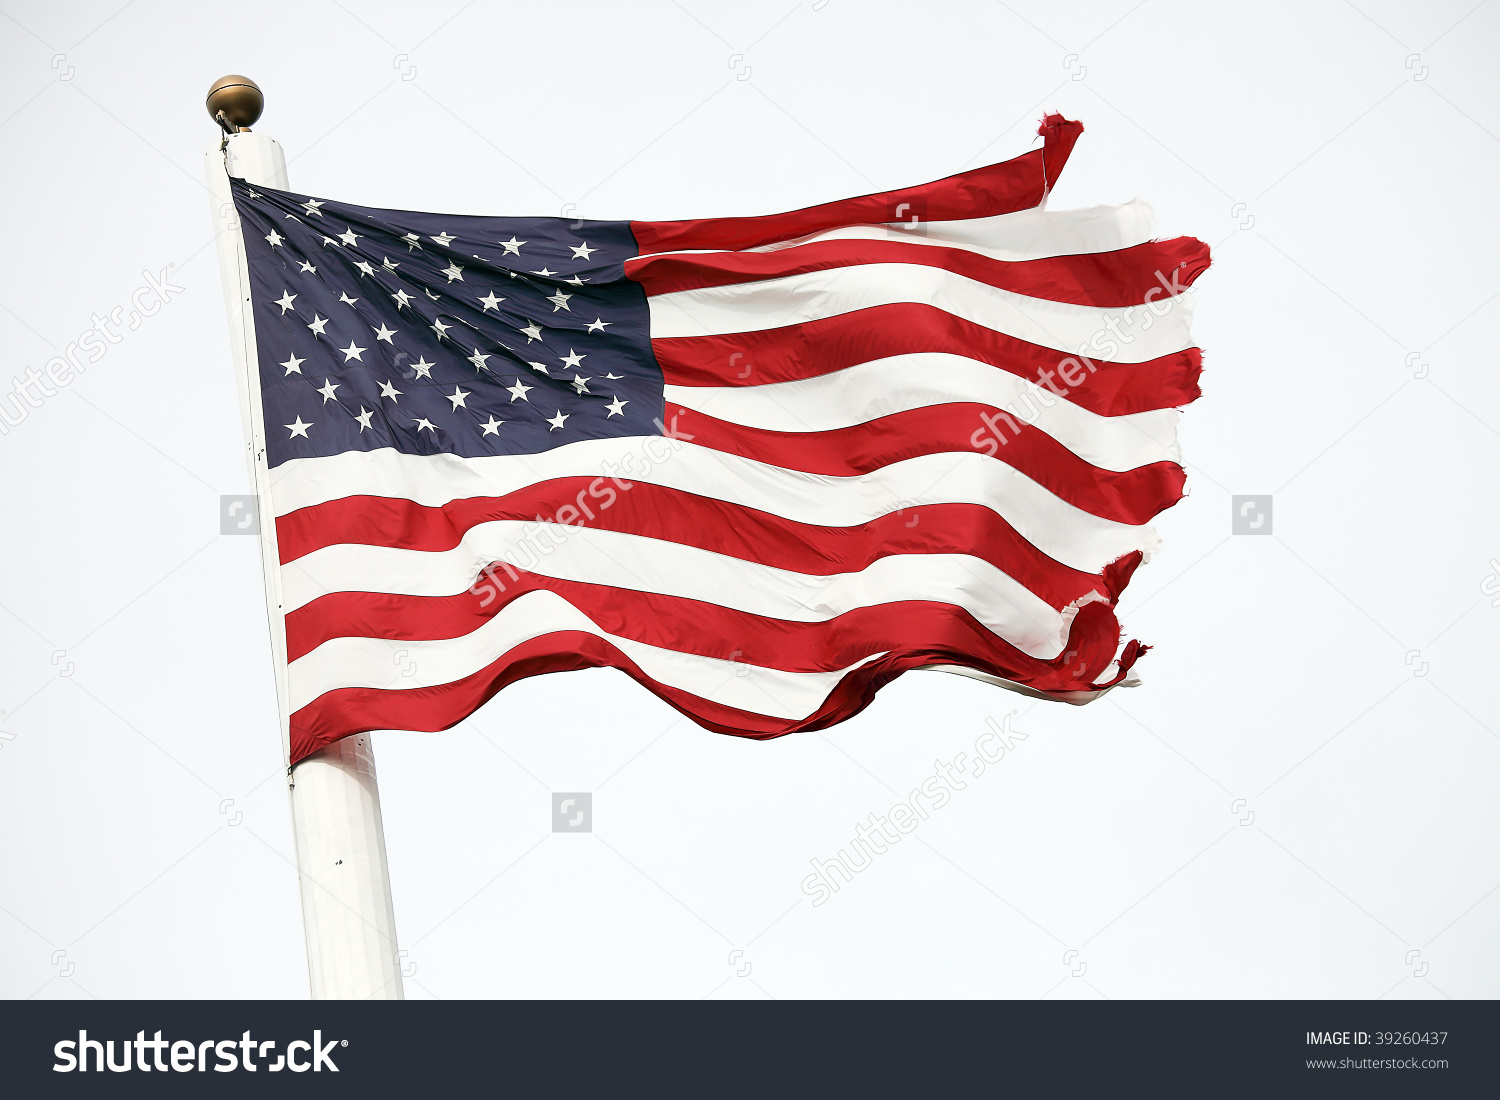 American flag tattered. Clipart free cliparts download